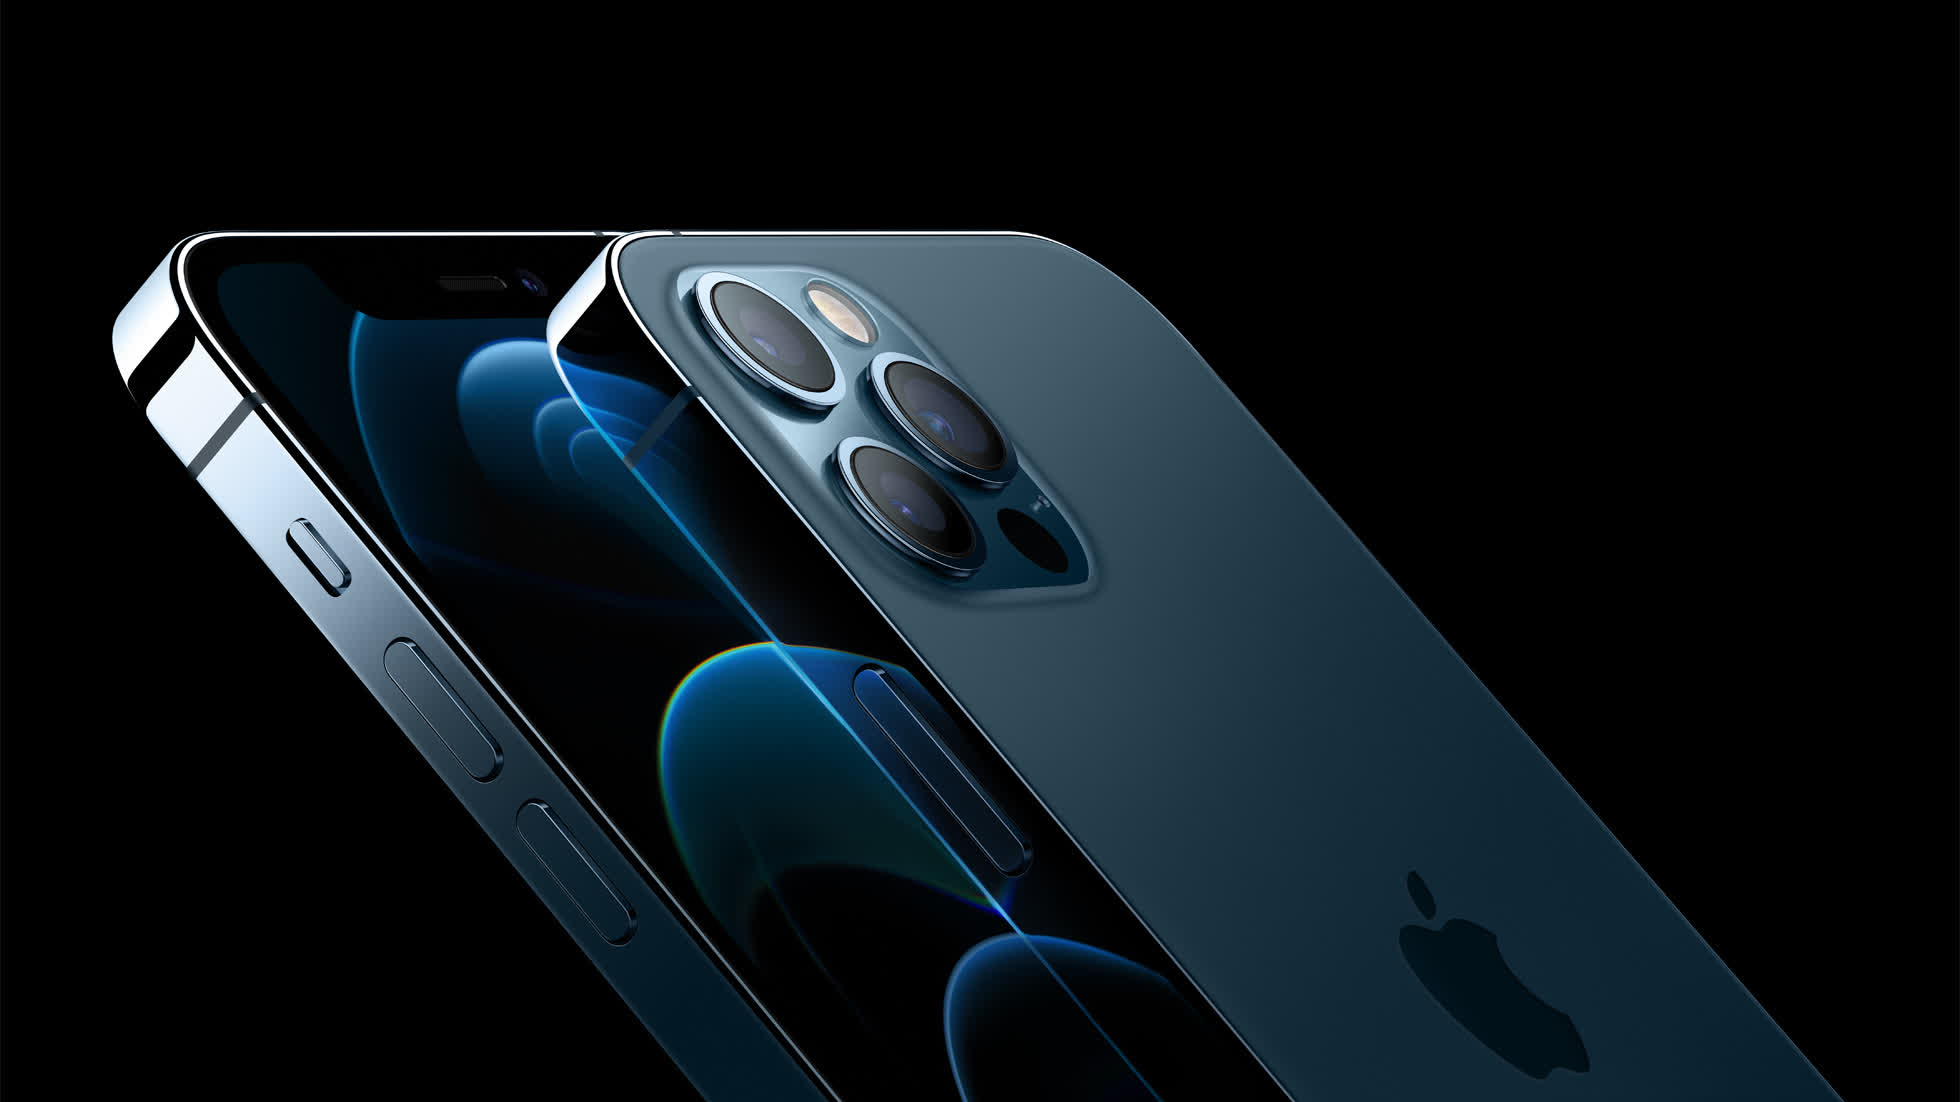 The iPhone 12 in Europe: Apple changes symbol positions, slower 5G, more expensive